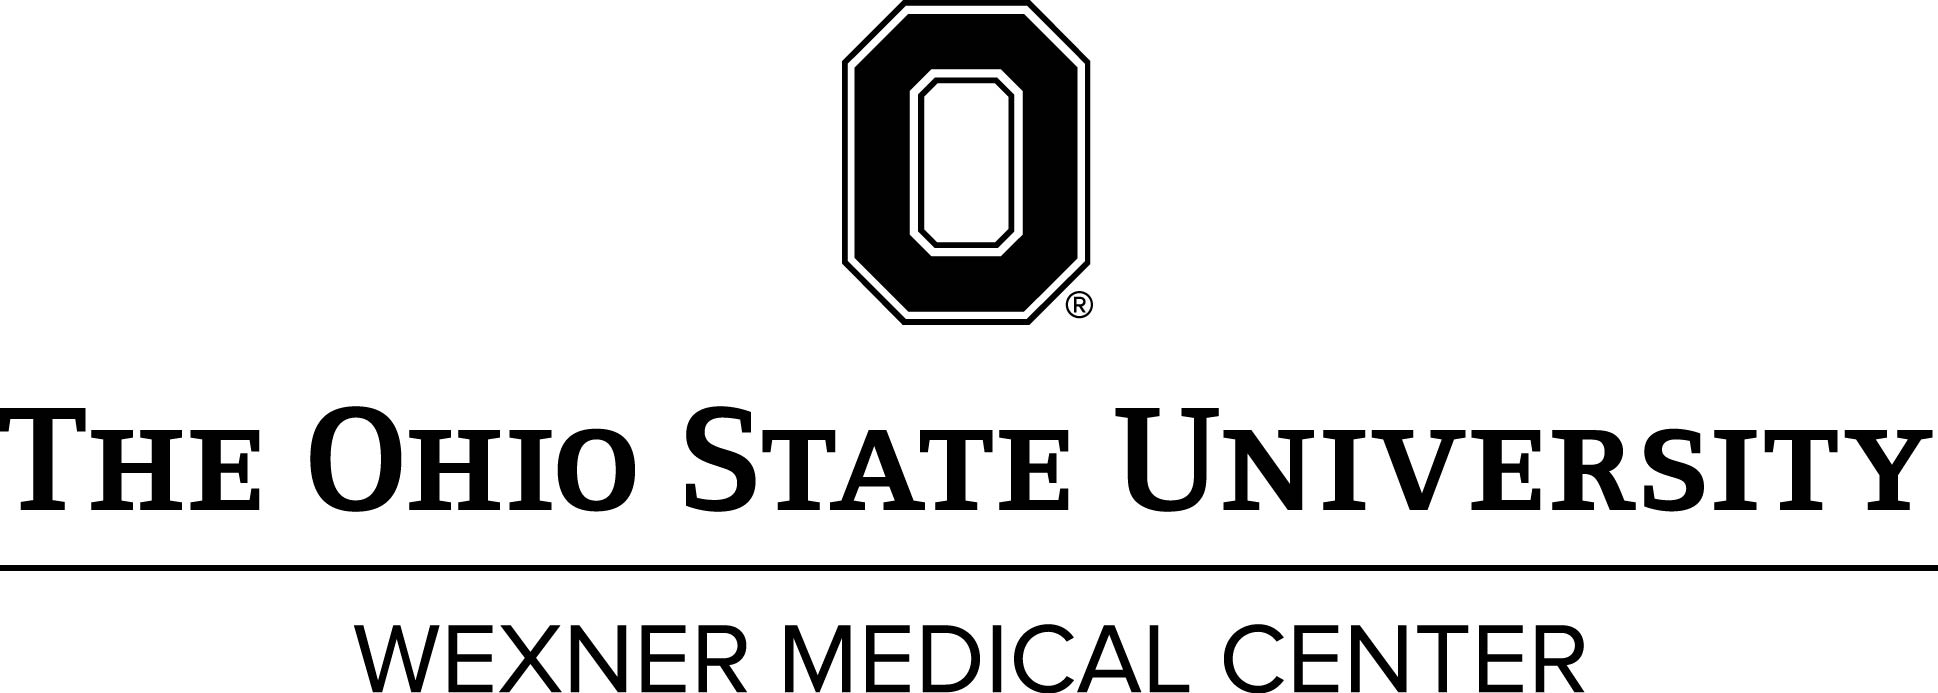 The Ohio State University Wexner Medical Center (Stroll)